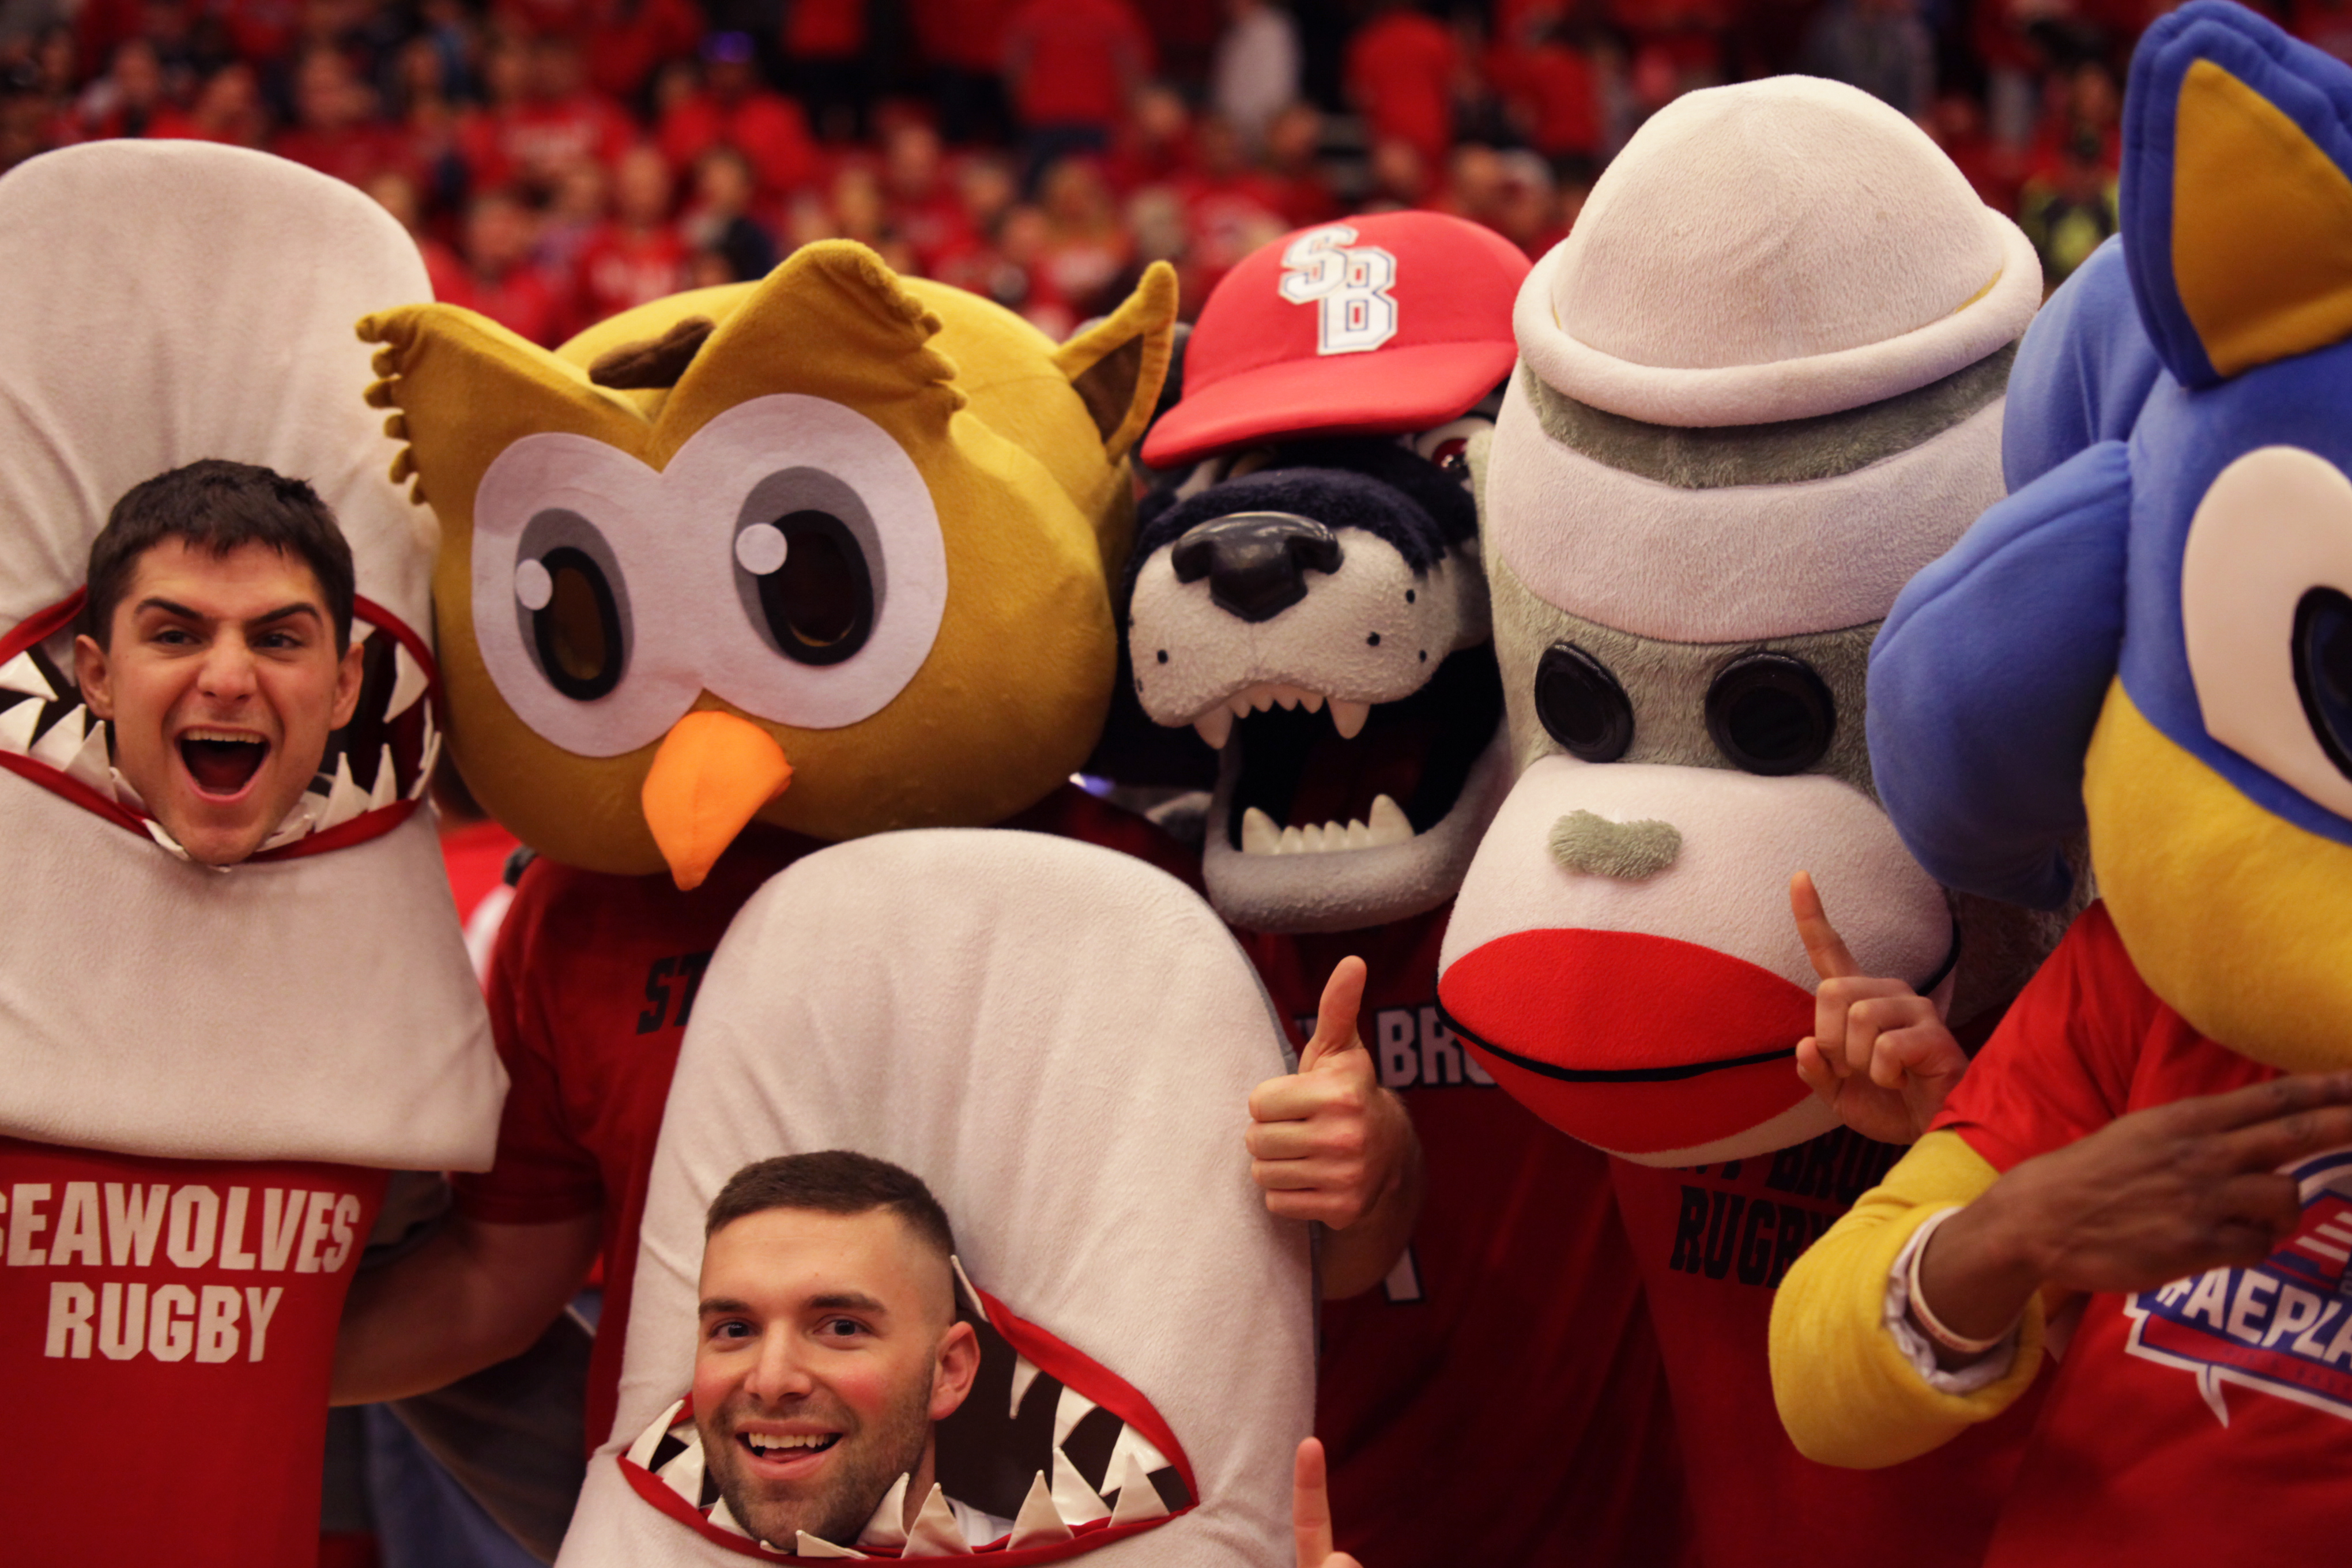 Mascots join together to celebrate Stony Brook's victory. CHRISTOPHER CAMERON/THE STATESMAN